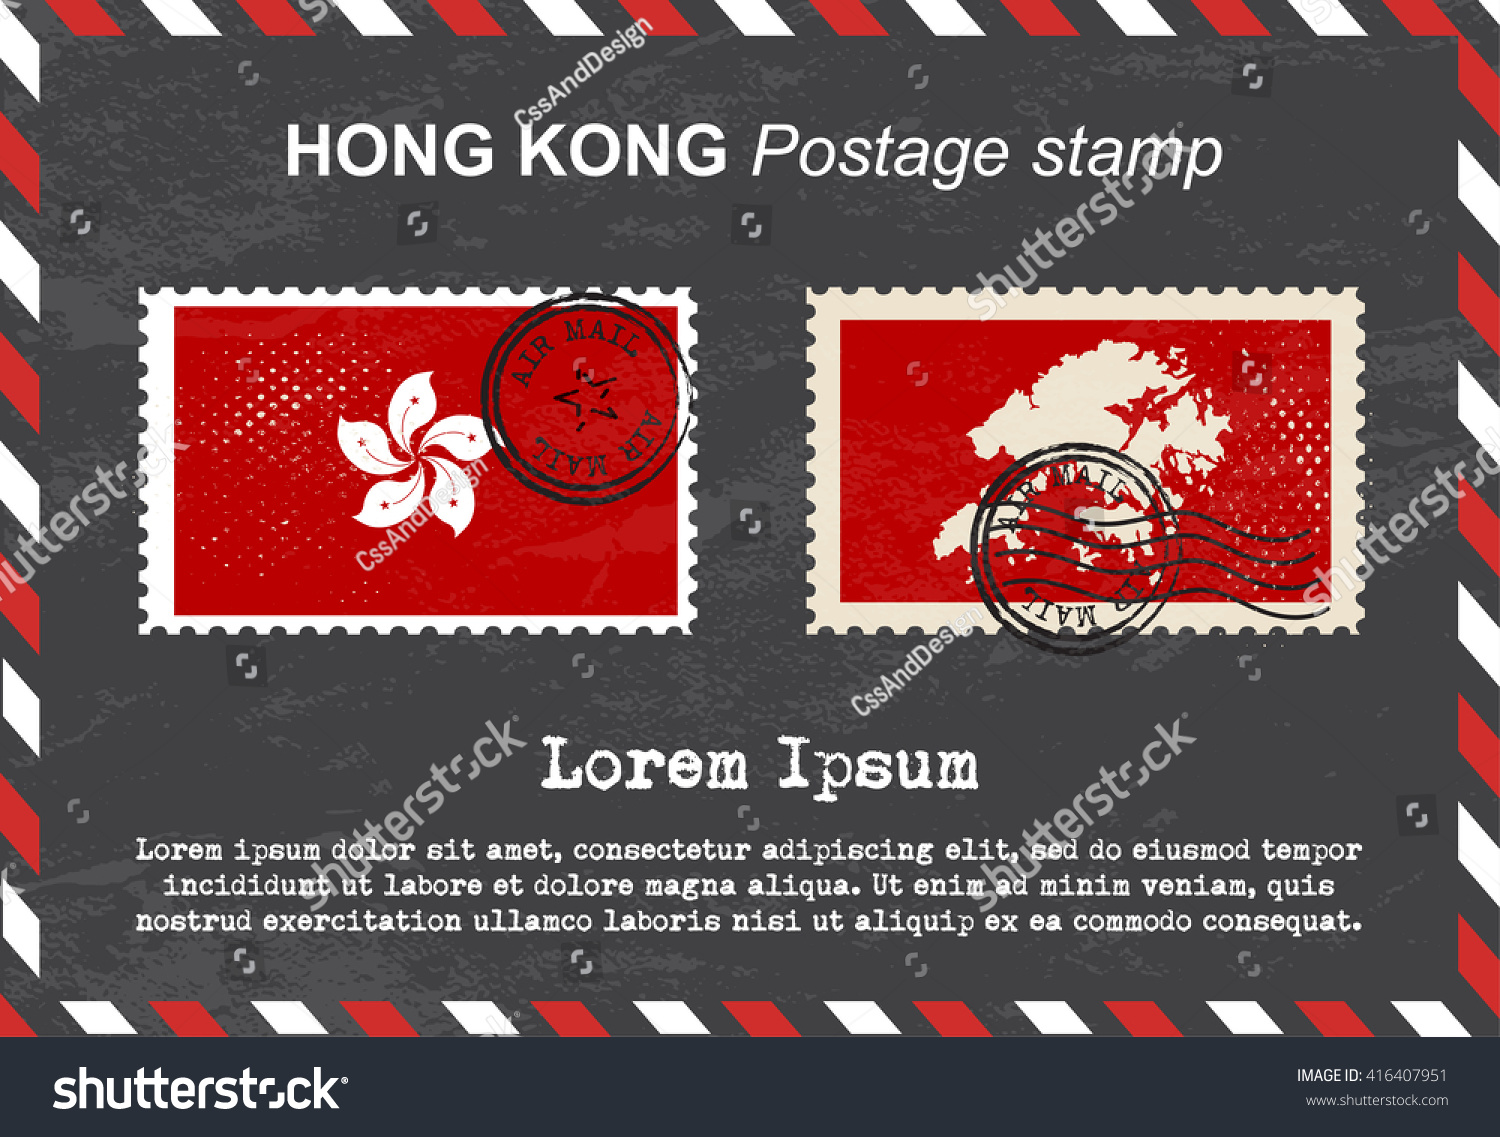 Hong Kong Postage Stamp Postage Stamp Stock Vector (Royalty Free ...